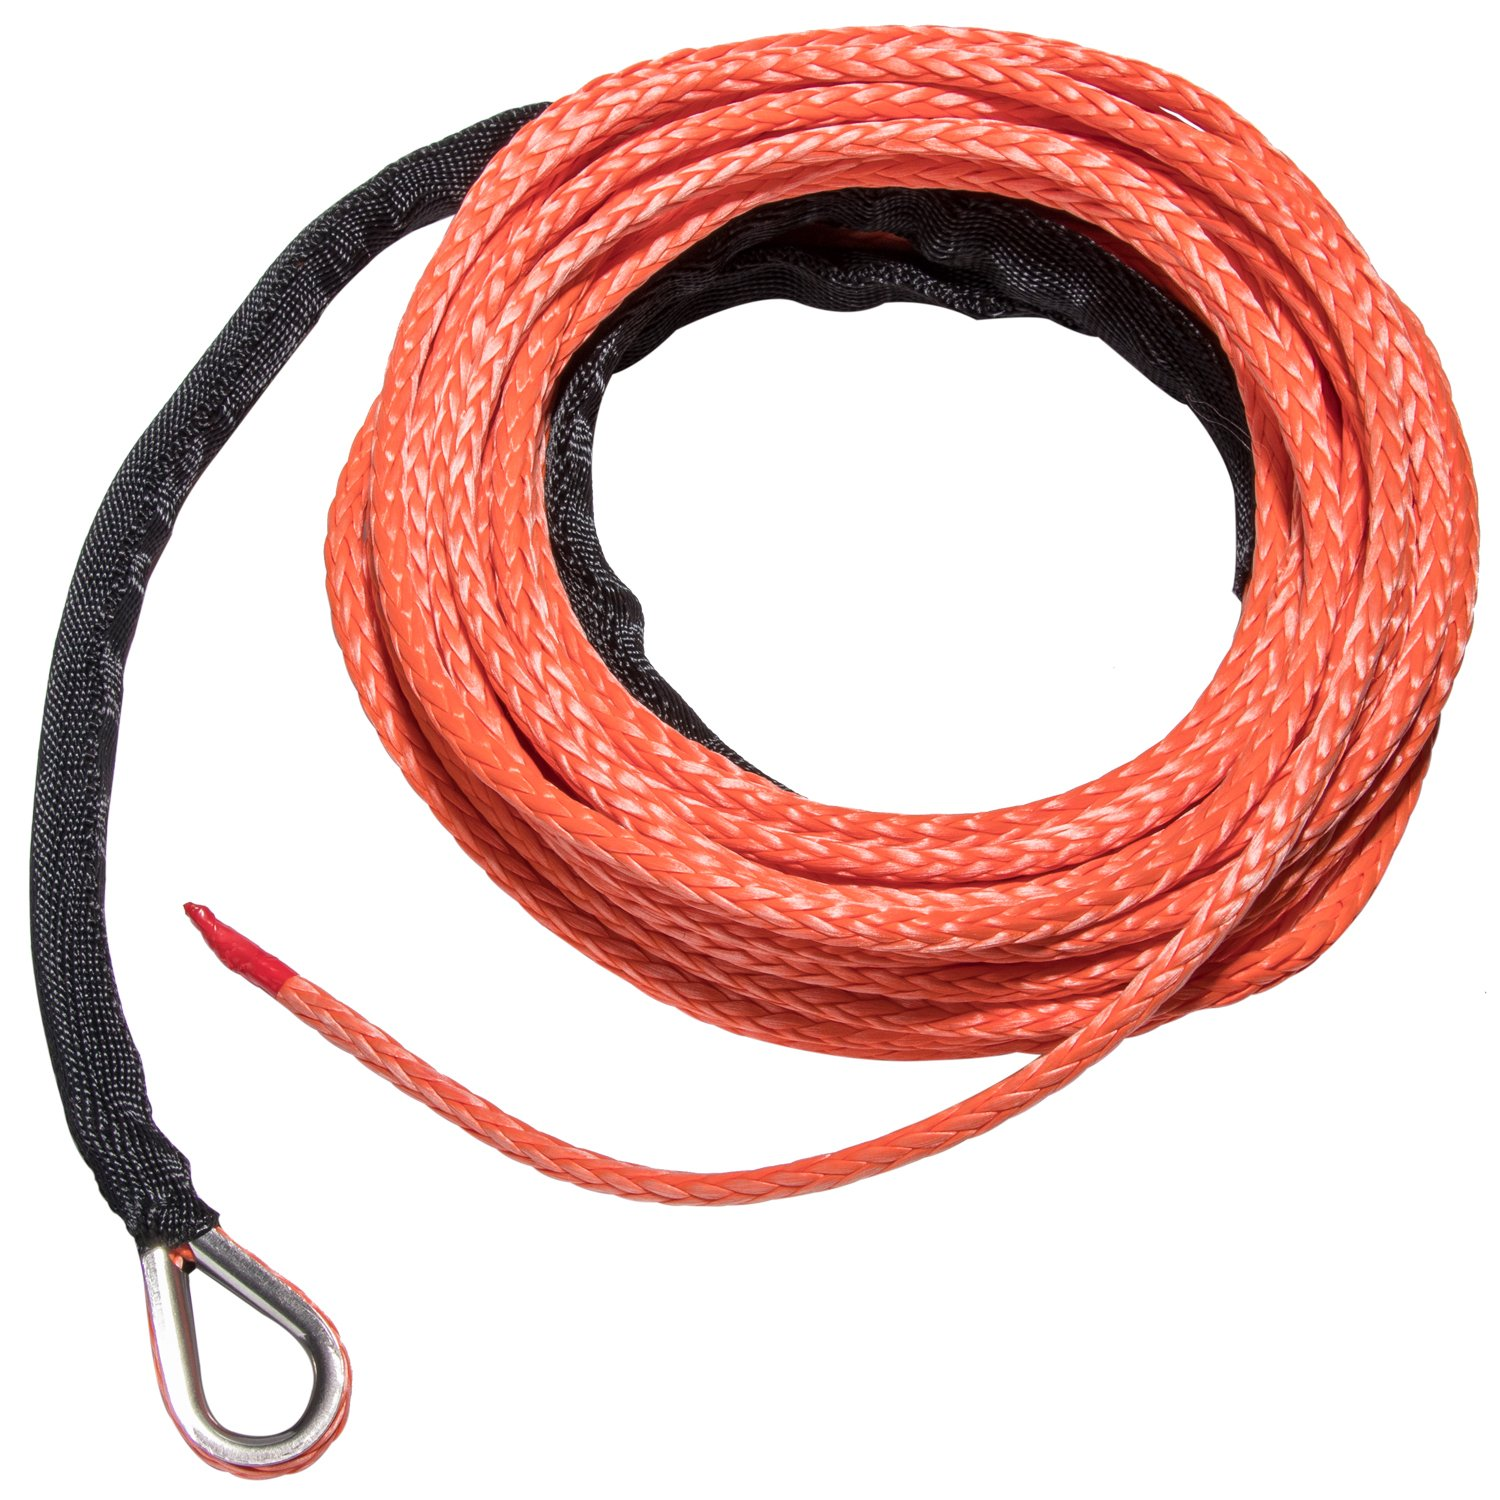 Yoursme Nylon Synthetic Winch Cable Rope with Sheath for SUV ATV UTV Winches Truck Boat Ramsey Car 1/4'' x 50'-7500LB+ Orange by Yoursme (Image #1)